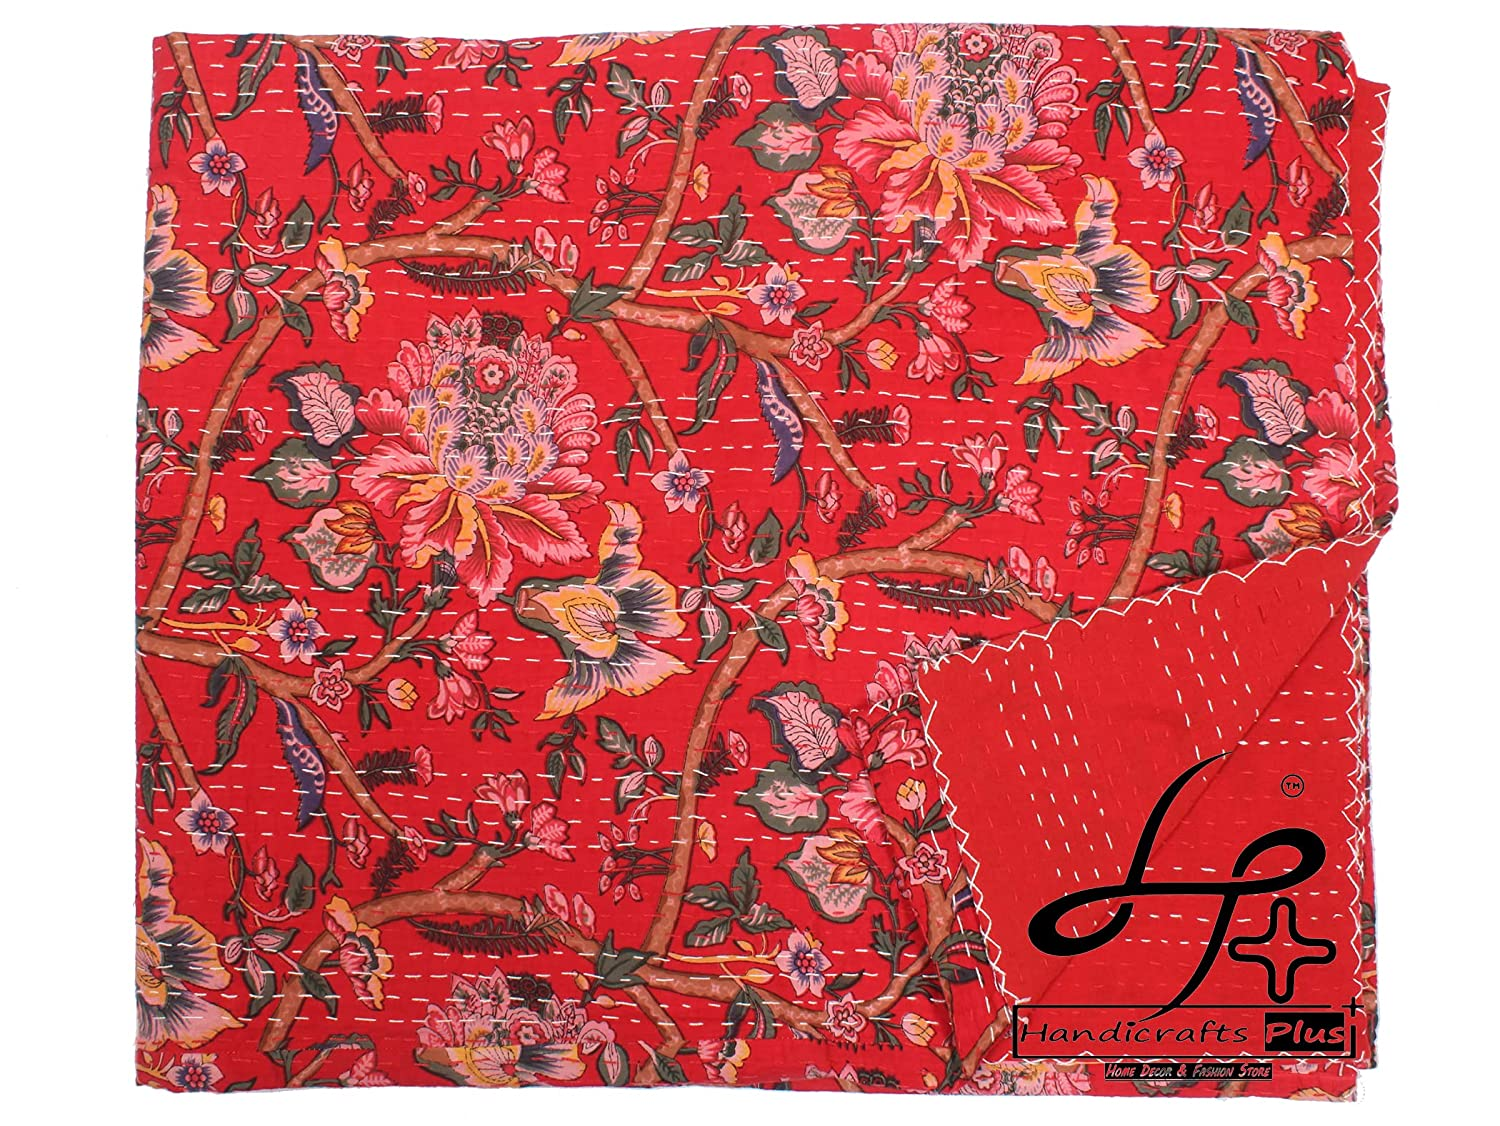 A Denver Mall surprise price is realized Handicrafts Plus King Size Kantha Bedsheet Quilt Cotton Handmade